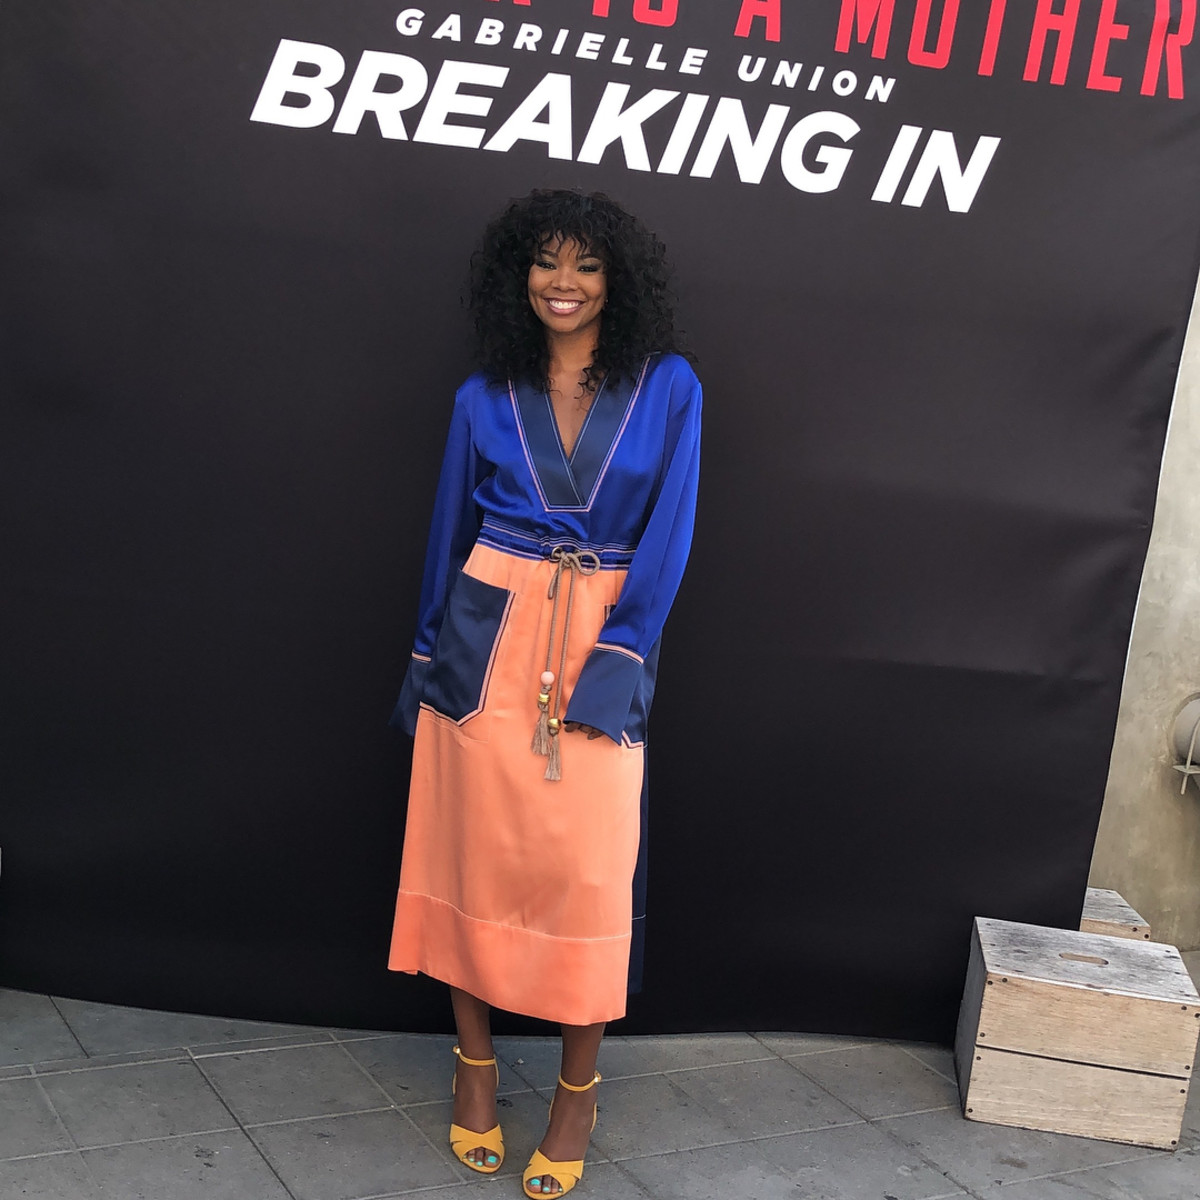 """Gabrielle Union in Peter Pilotto at a meet and greet for """"Breaking In"""". Photo: @breakinginmovie/Instagram"""